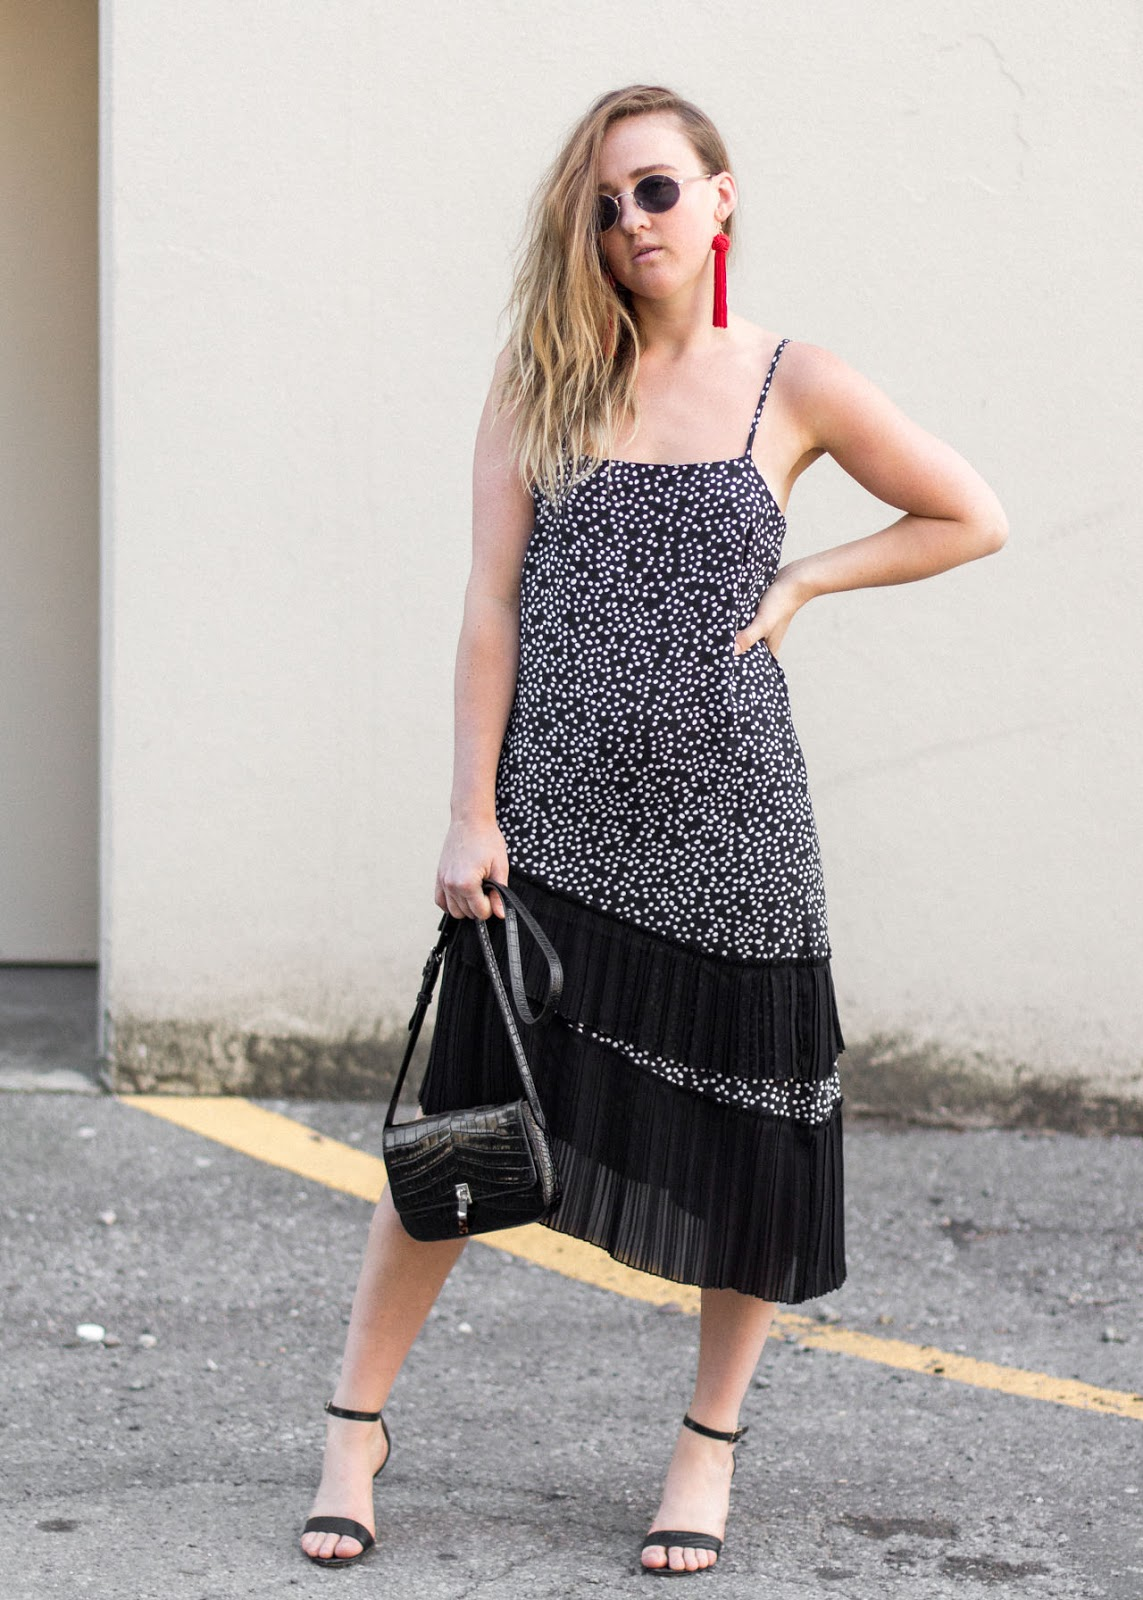 H&M polka dot dress - Evening look - In My Dreams - Vancouver Fashion Blogger